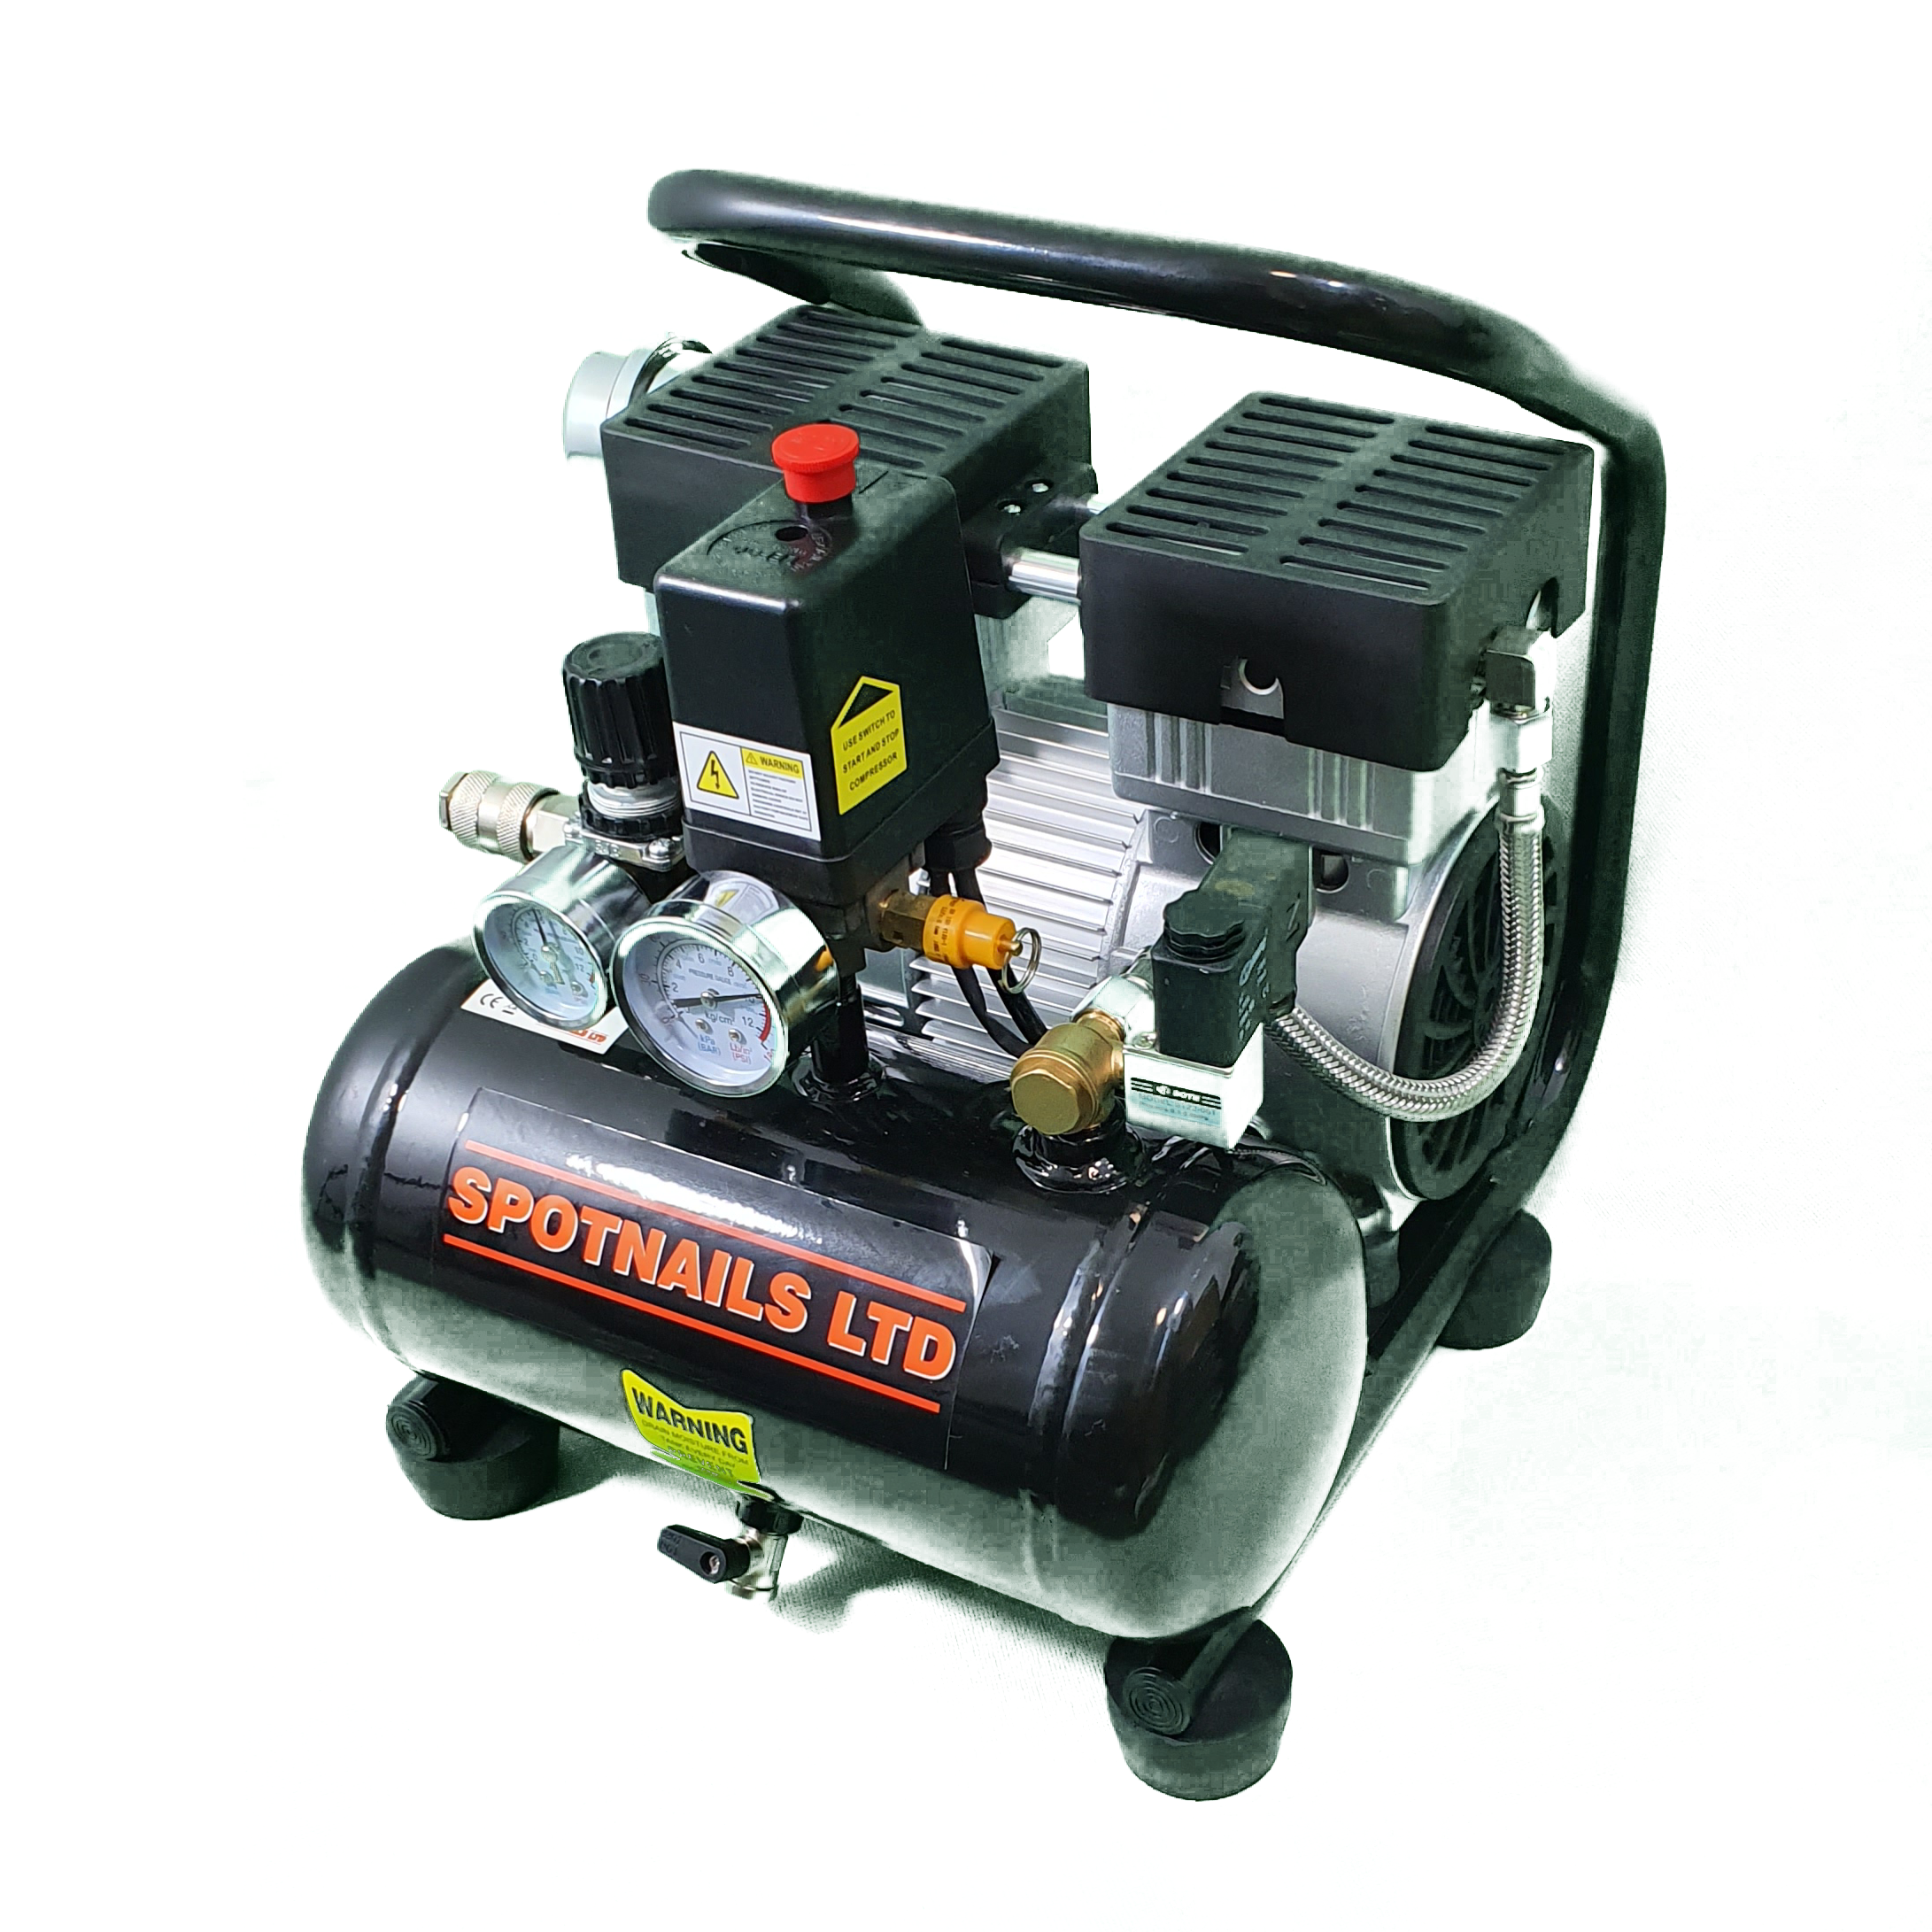 Spotnail new low noise compressor